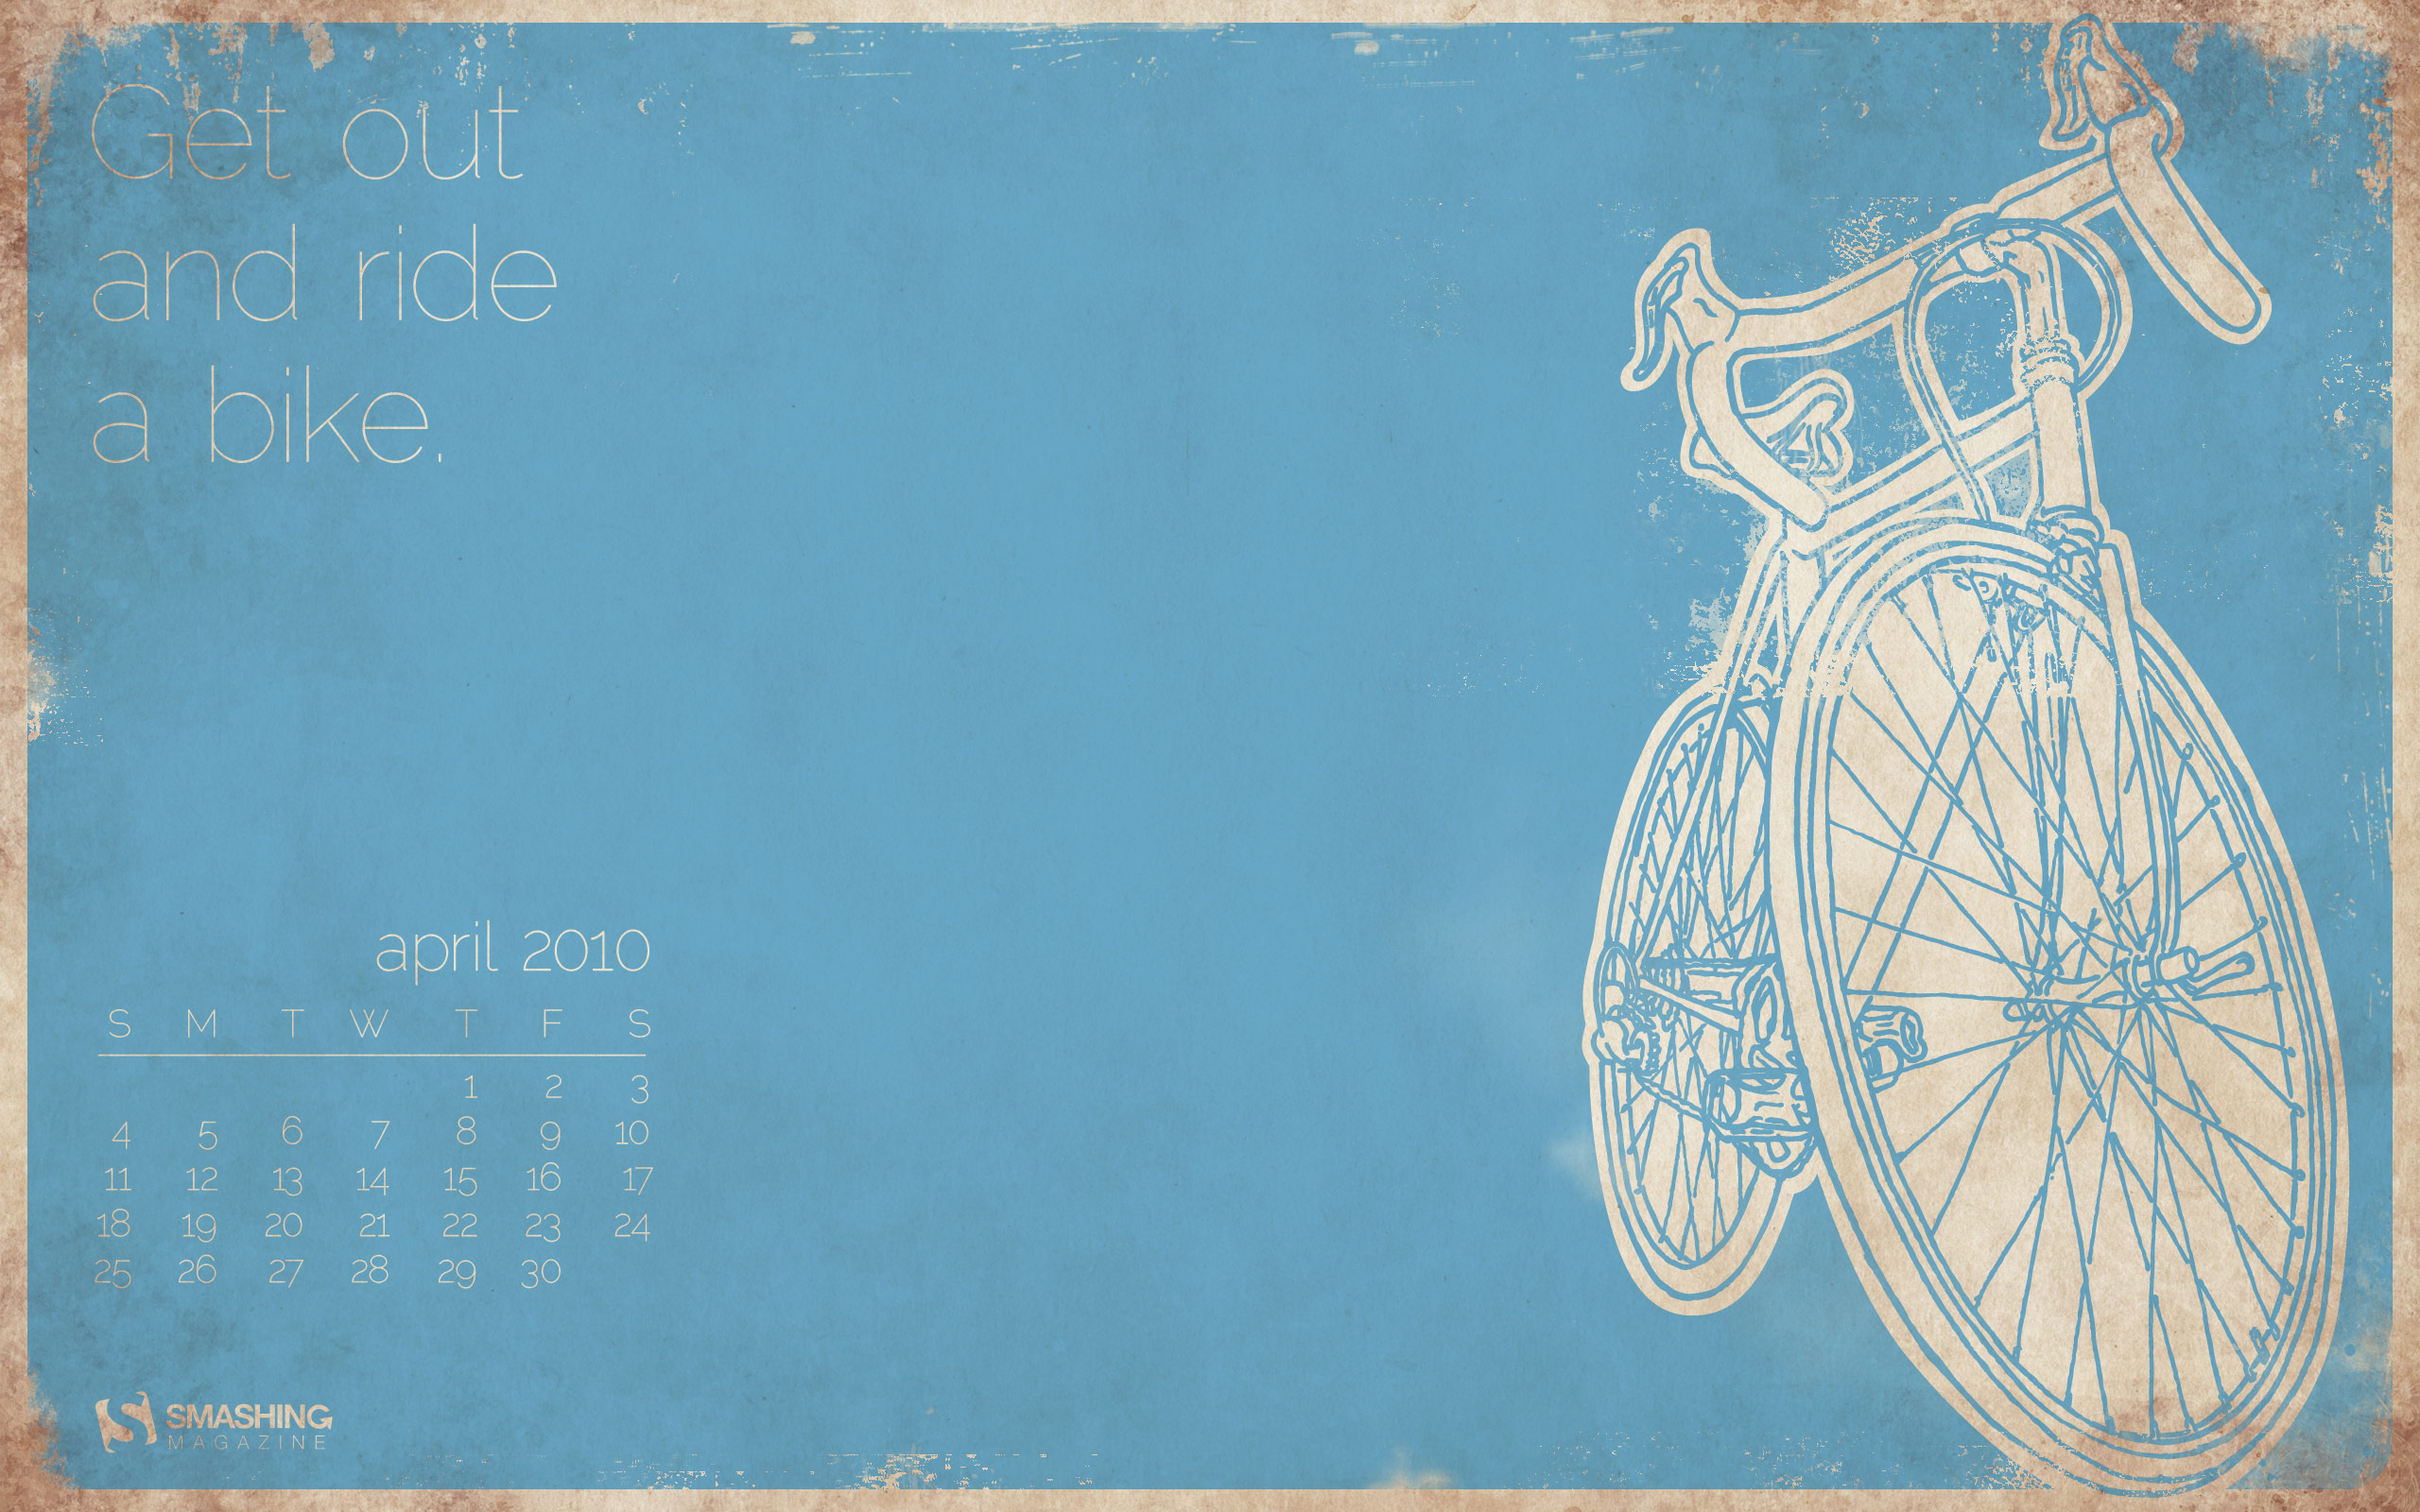 2560x1600 Ride a bike desktop PC and Mac wallpaper 2560x1600